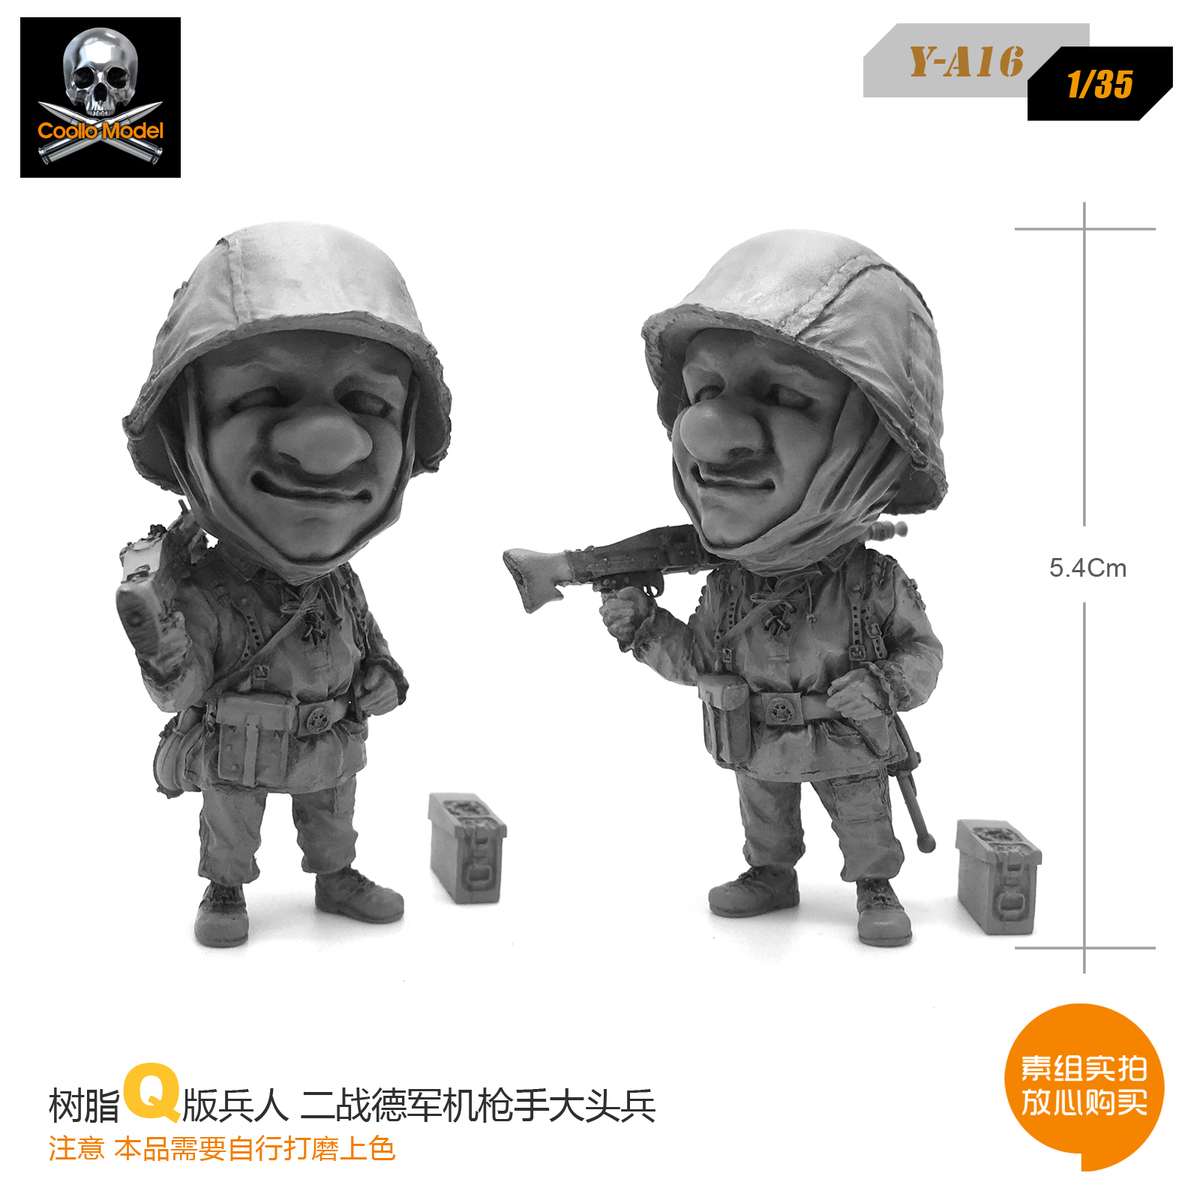 Freeshipping1/16 World War II <font><b>German</b></font> Machine Gunners Big Soldier <font><b>Model</b></font> <font><b>Resin</b></font> Q Version Soldier Y-A16 image